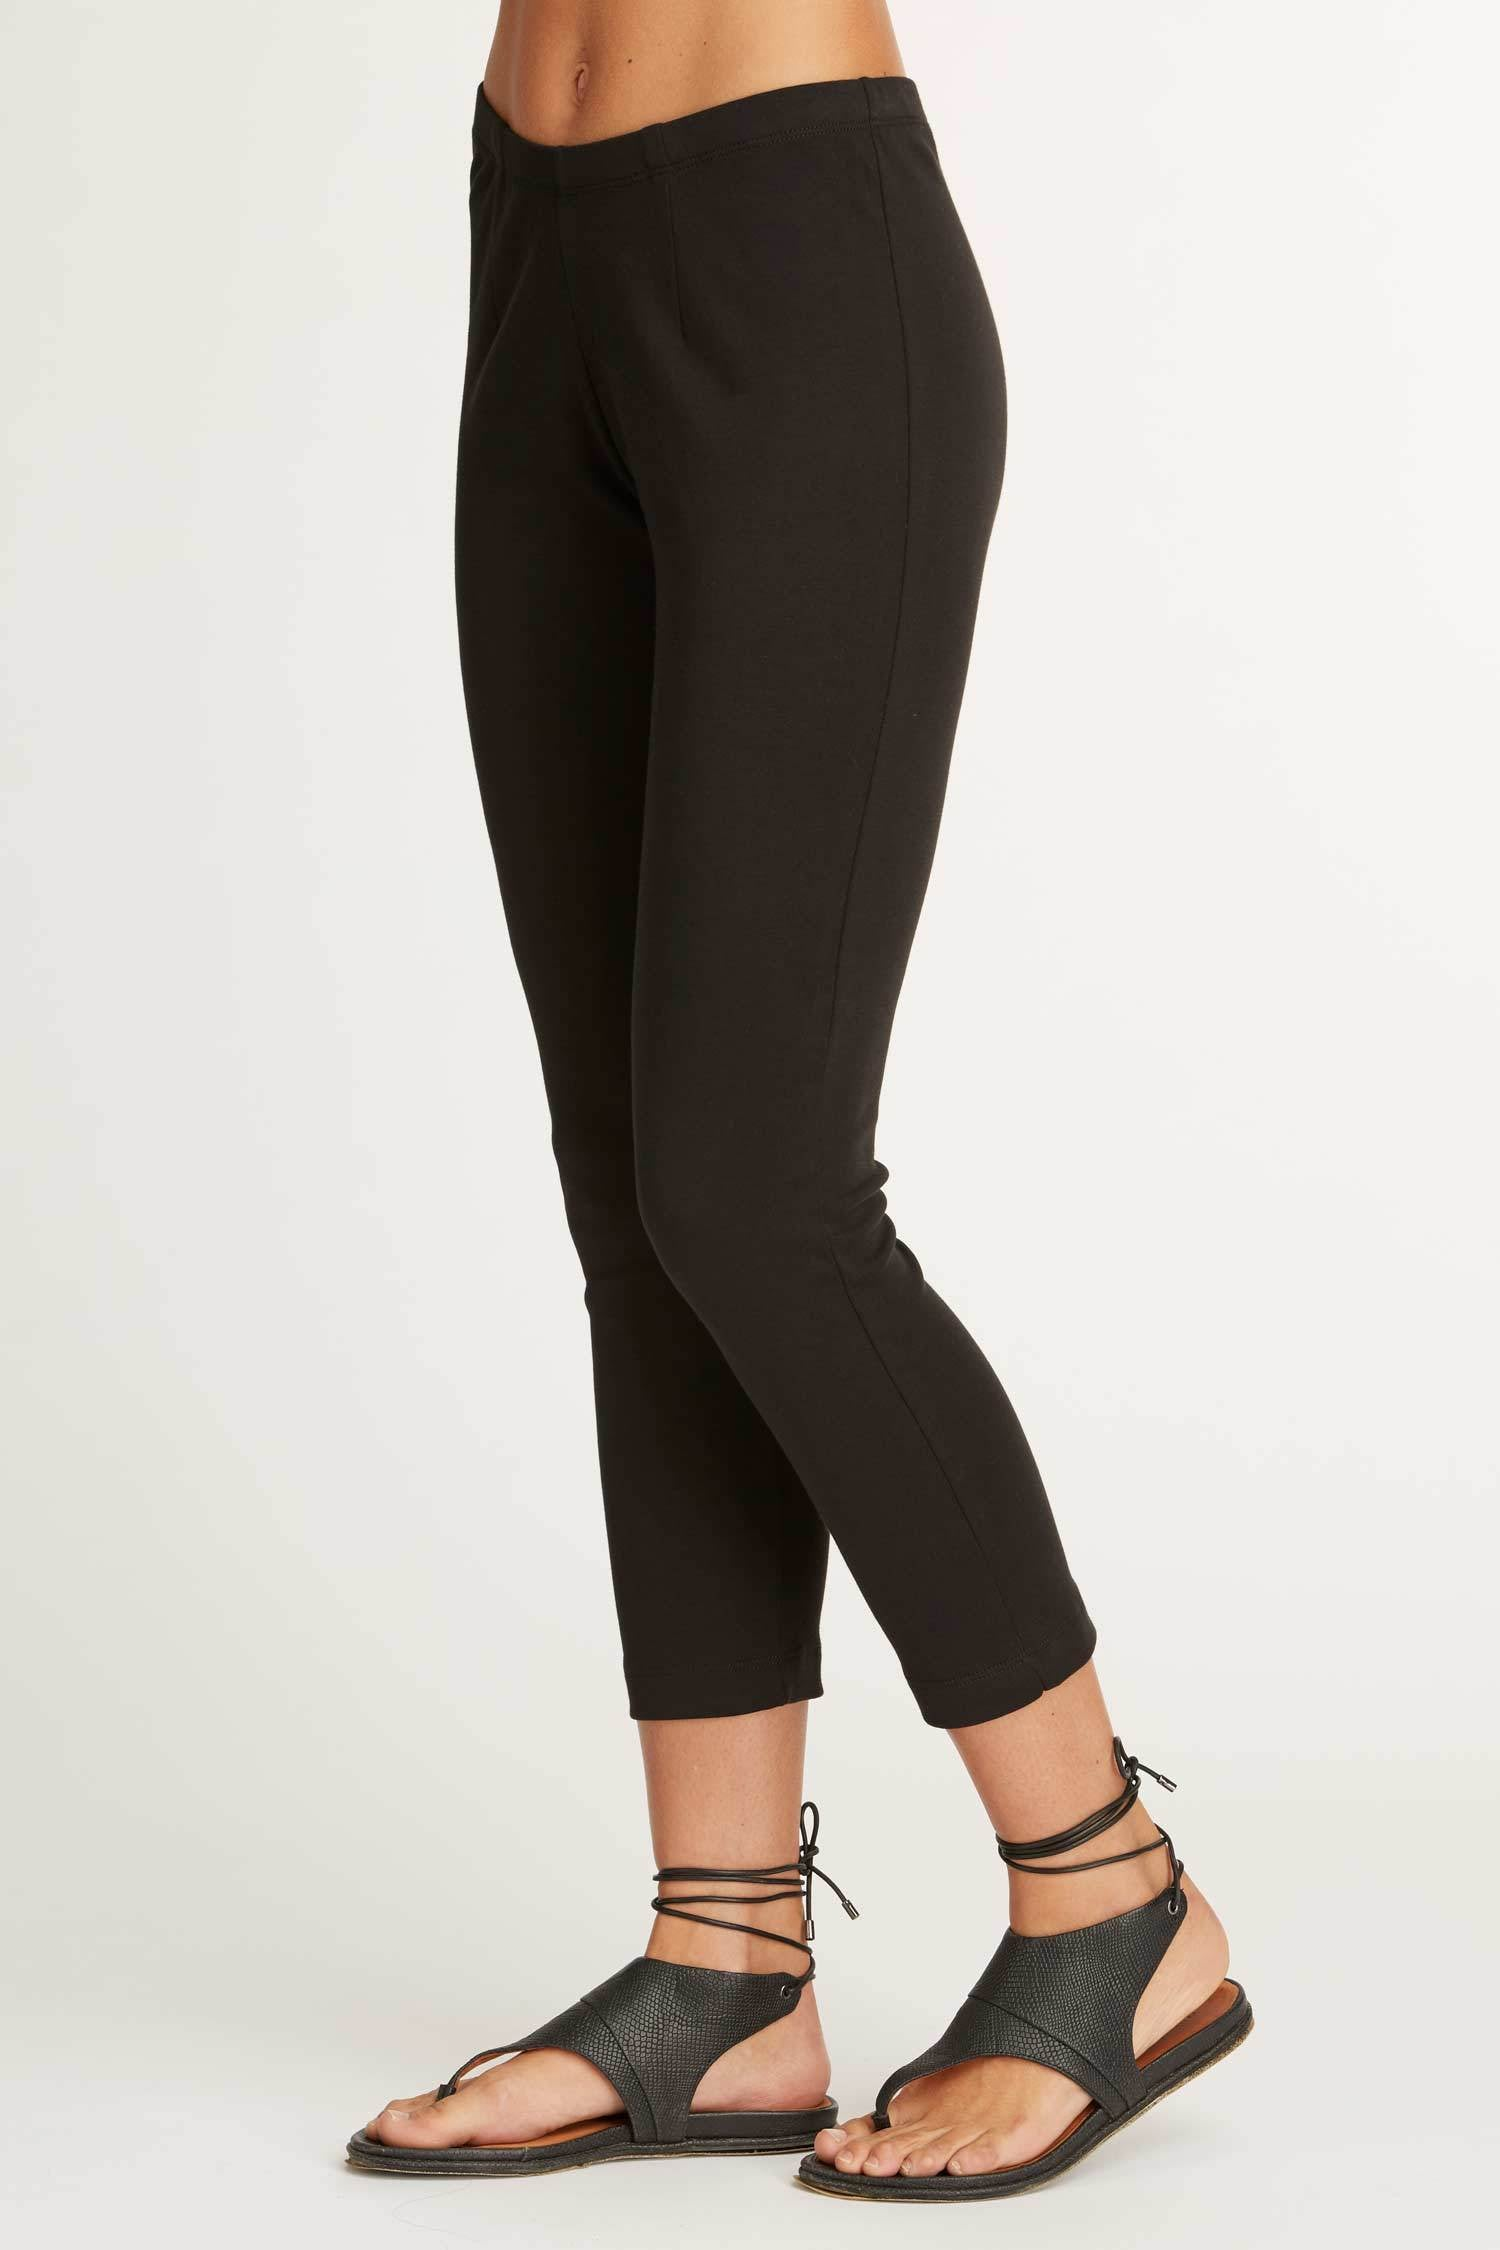 Womens Organic Cotton Leggings | Black Luxe Capri Legging | Indigenous